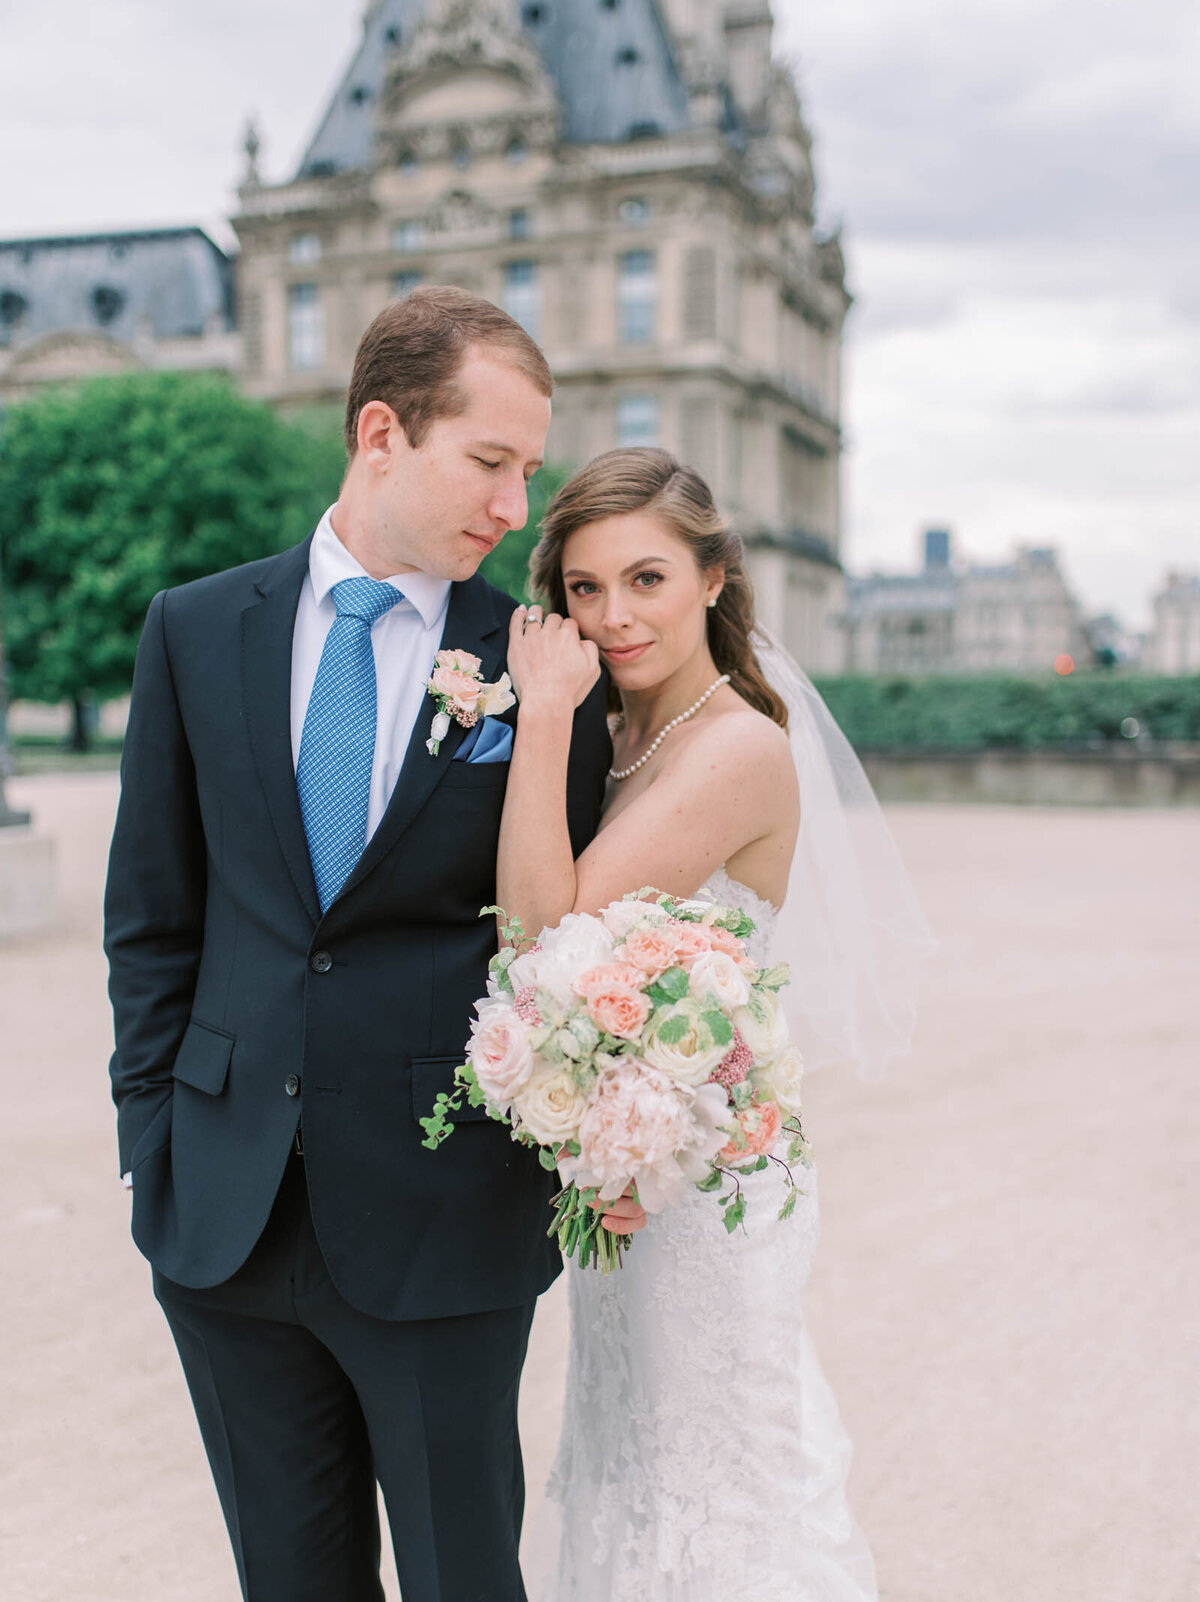 marcelaploskerphotography-paris_wedding-59